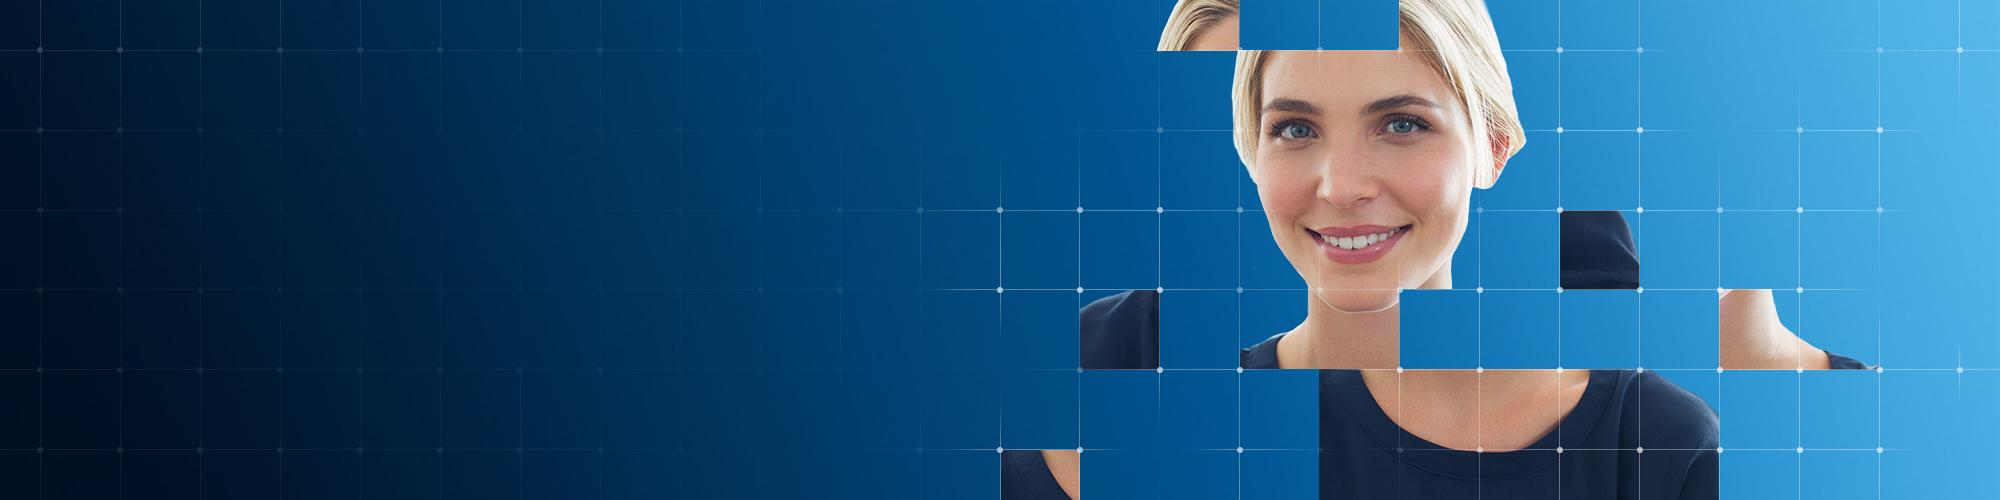 Young woman puzzle pieces/connected dots effect on blue background